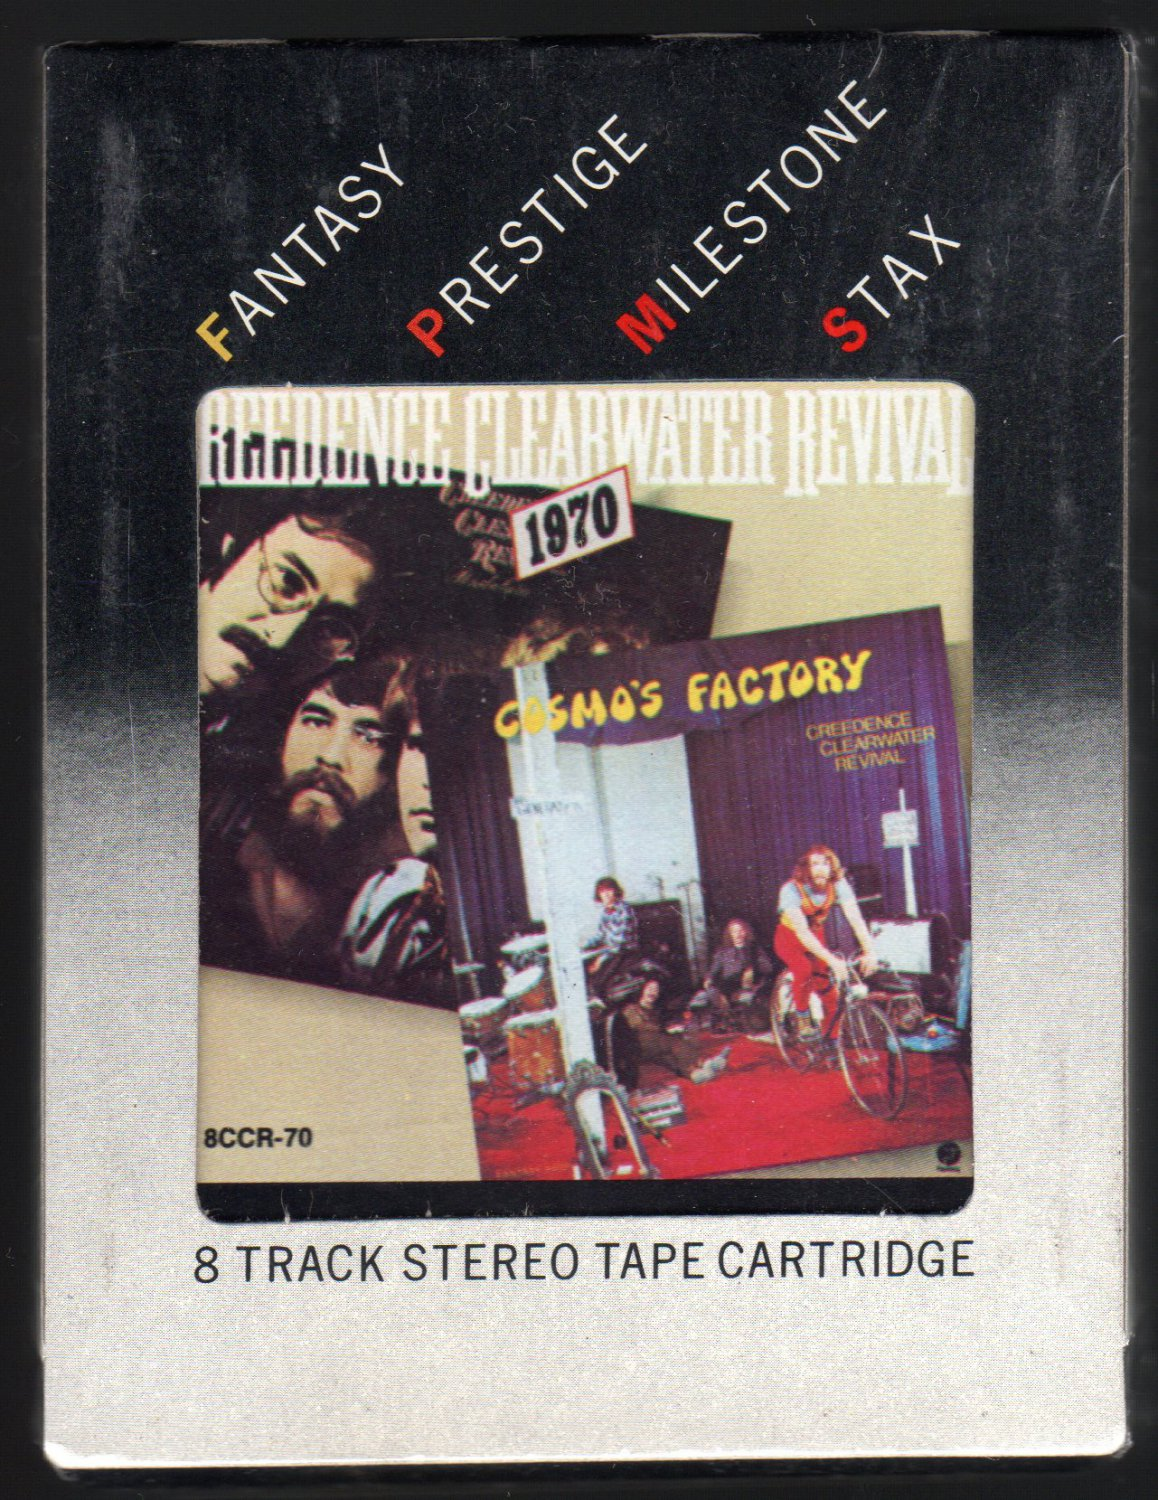 Creedence Clearwater Revival - 1970 Cosmos Factory + Pendulum 1978 FANTASY Sealed A4 8-TRACK TAPE